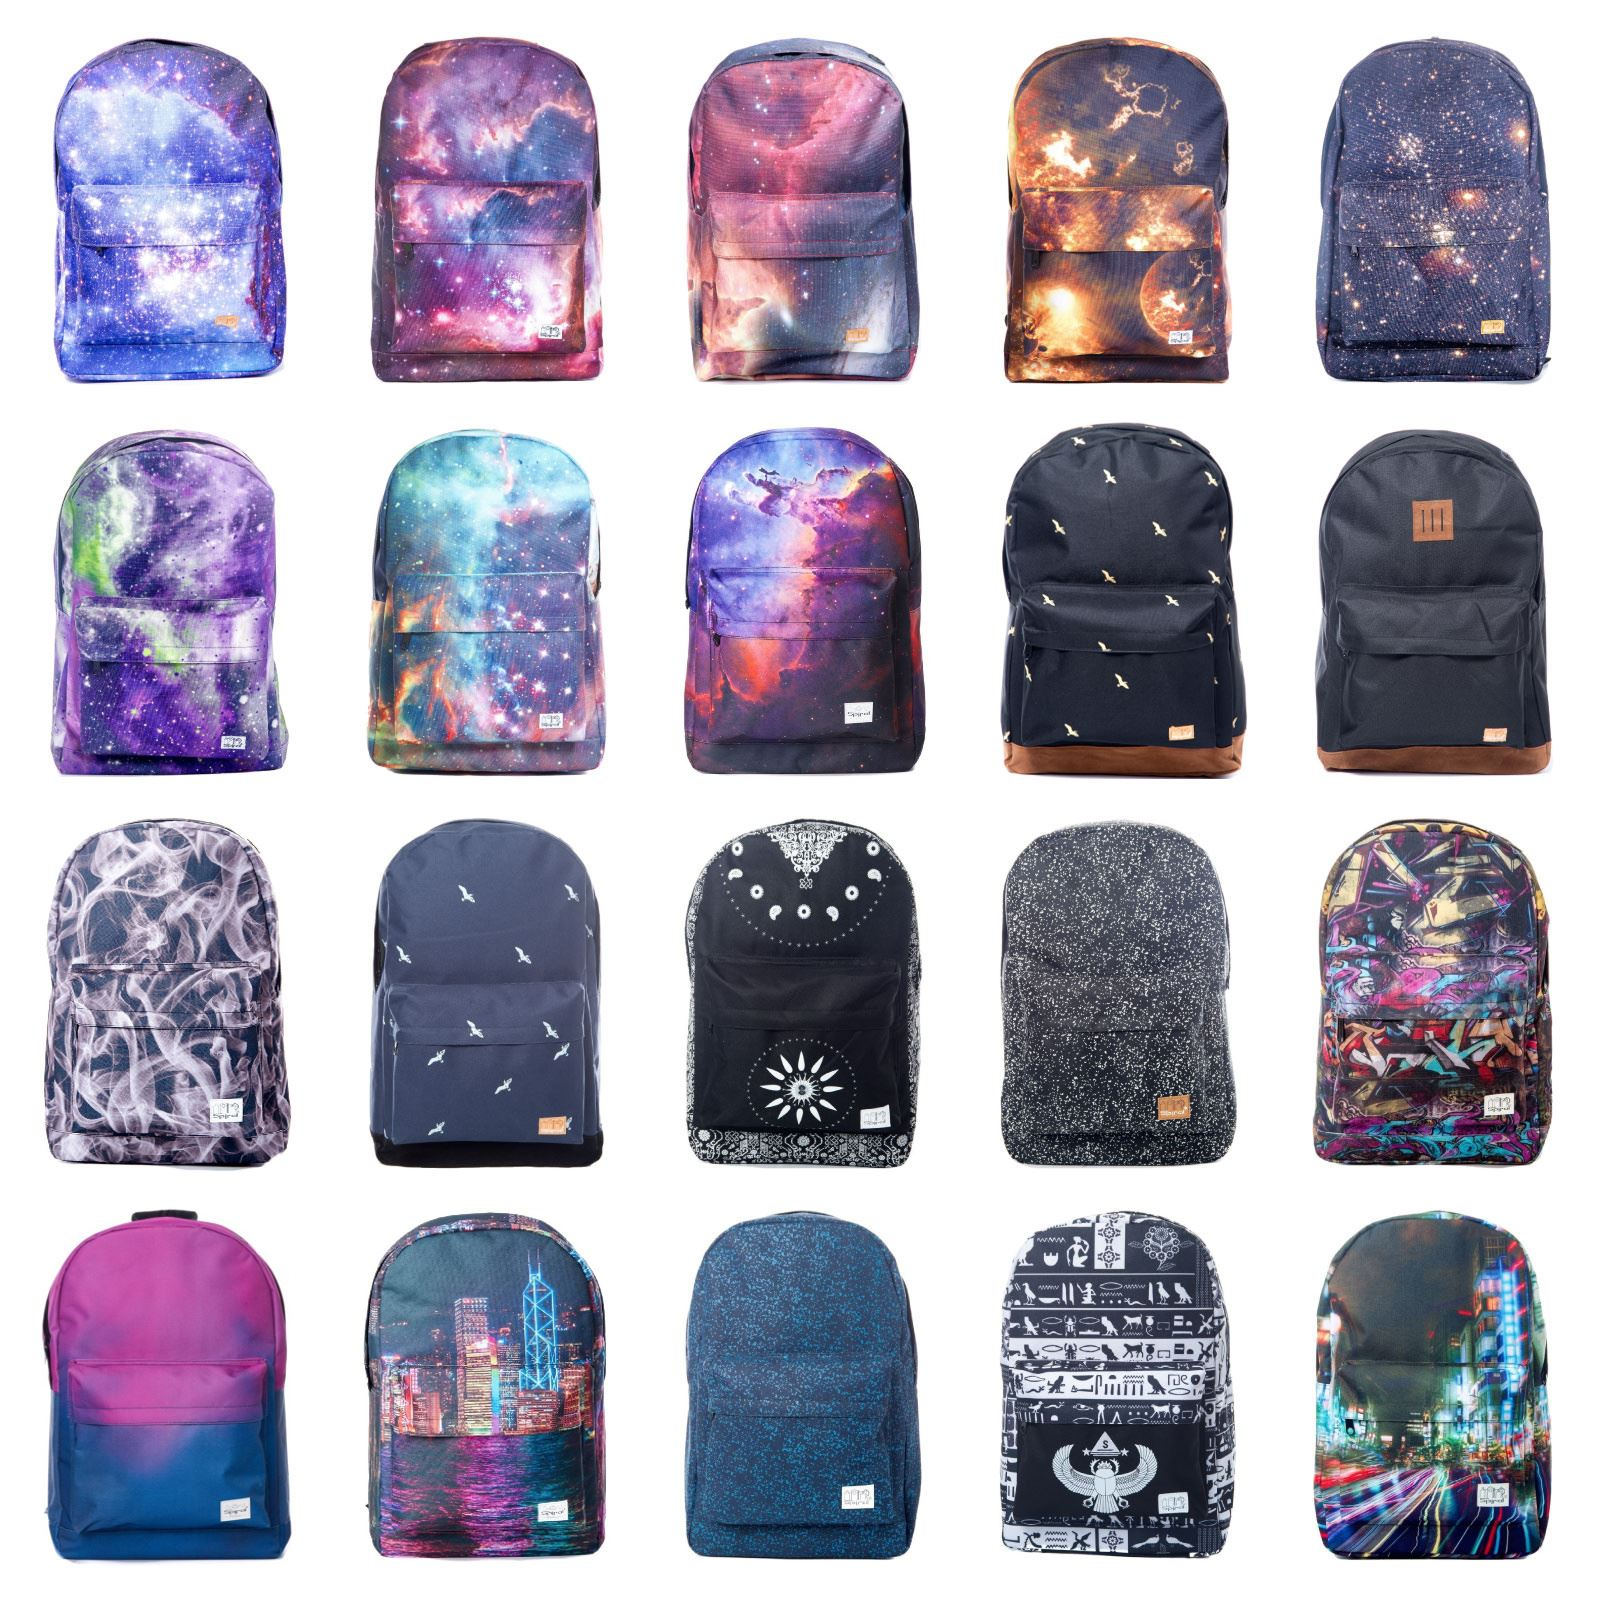 190376bac7 Spiral Unisex OG Backpack Rucksack Bags - Various Galaxy Prints & Plain  Colours